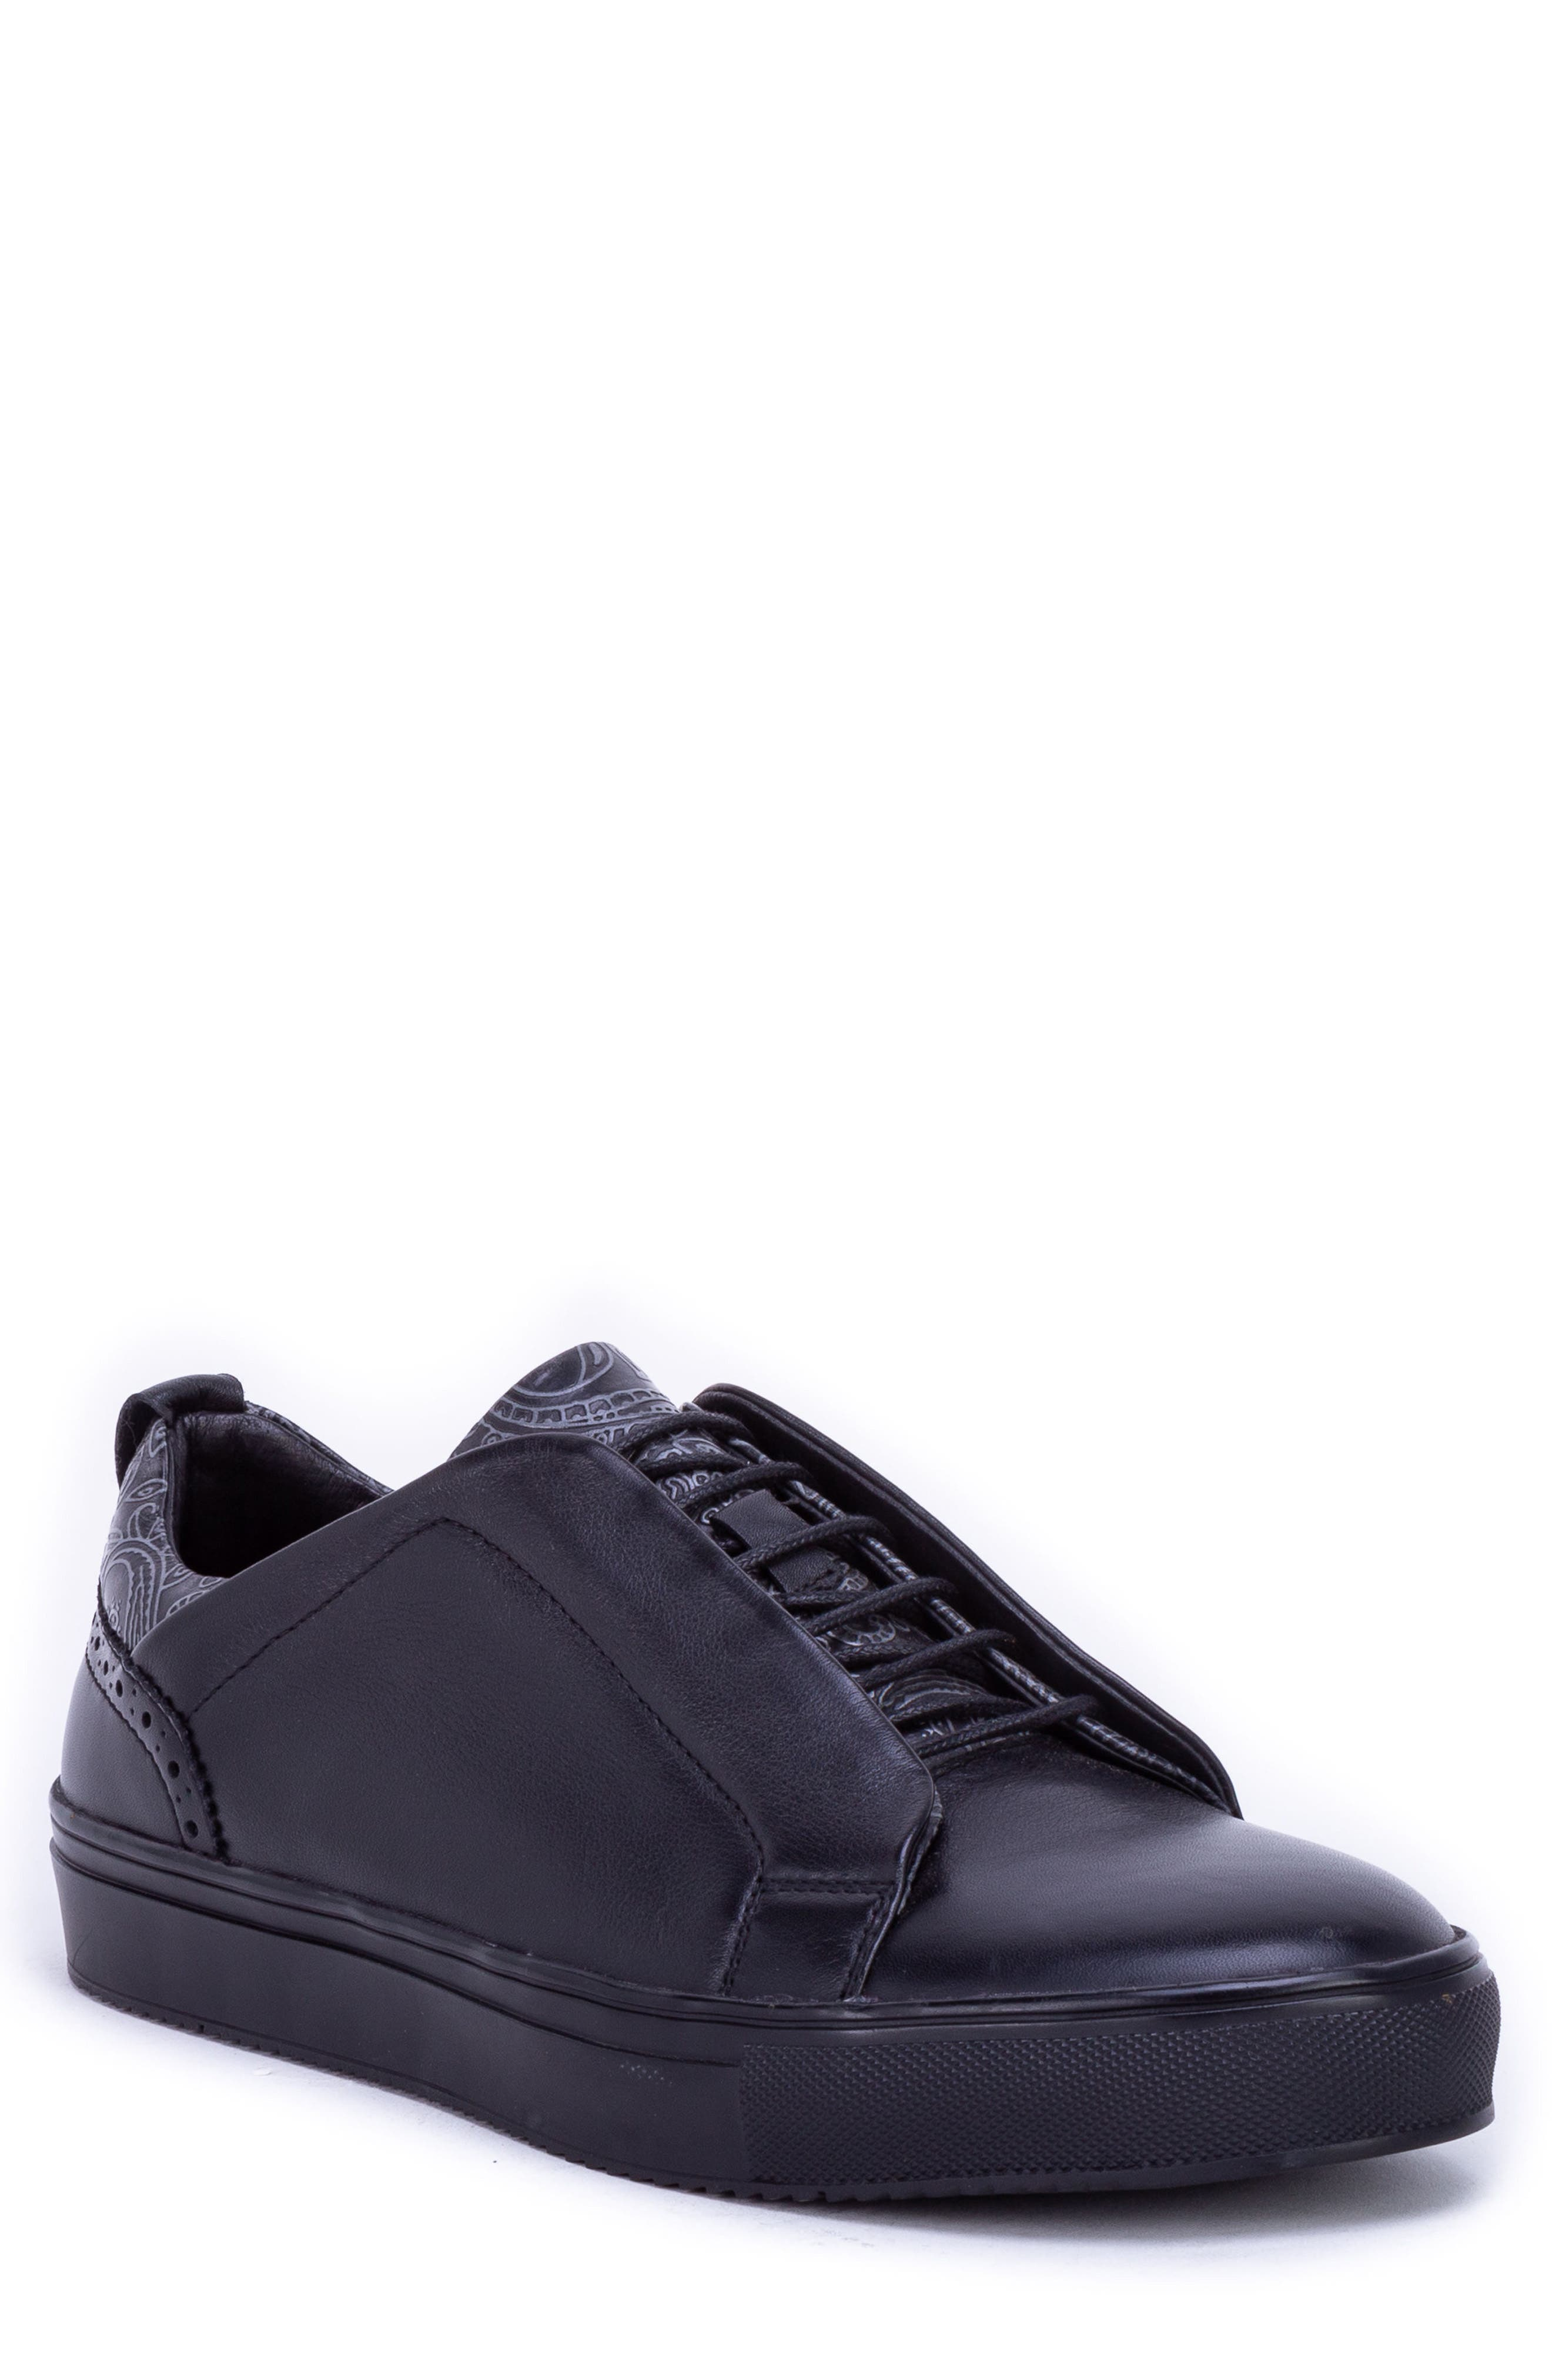 Sharpe Textured Sneaker,                         Main,                         color, 001